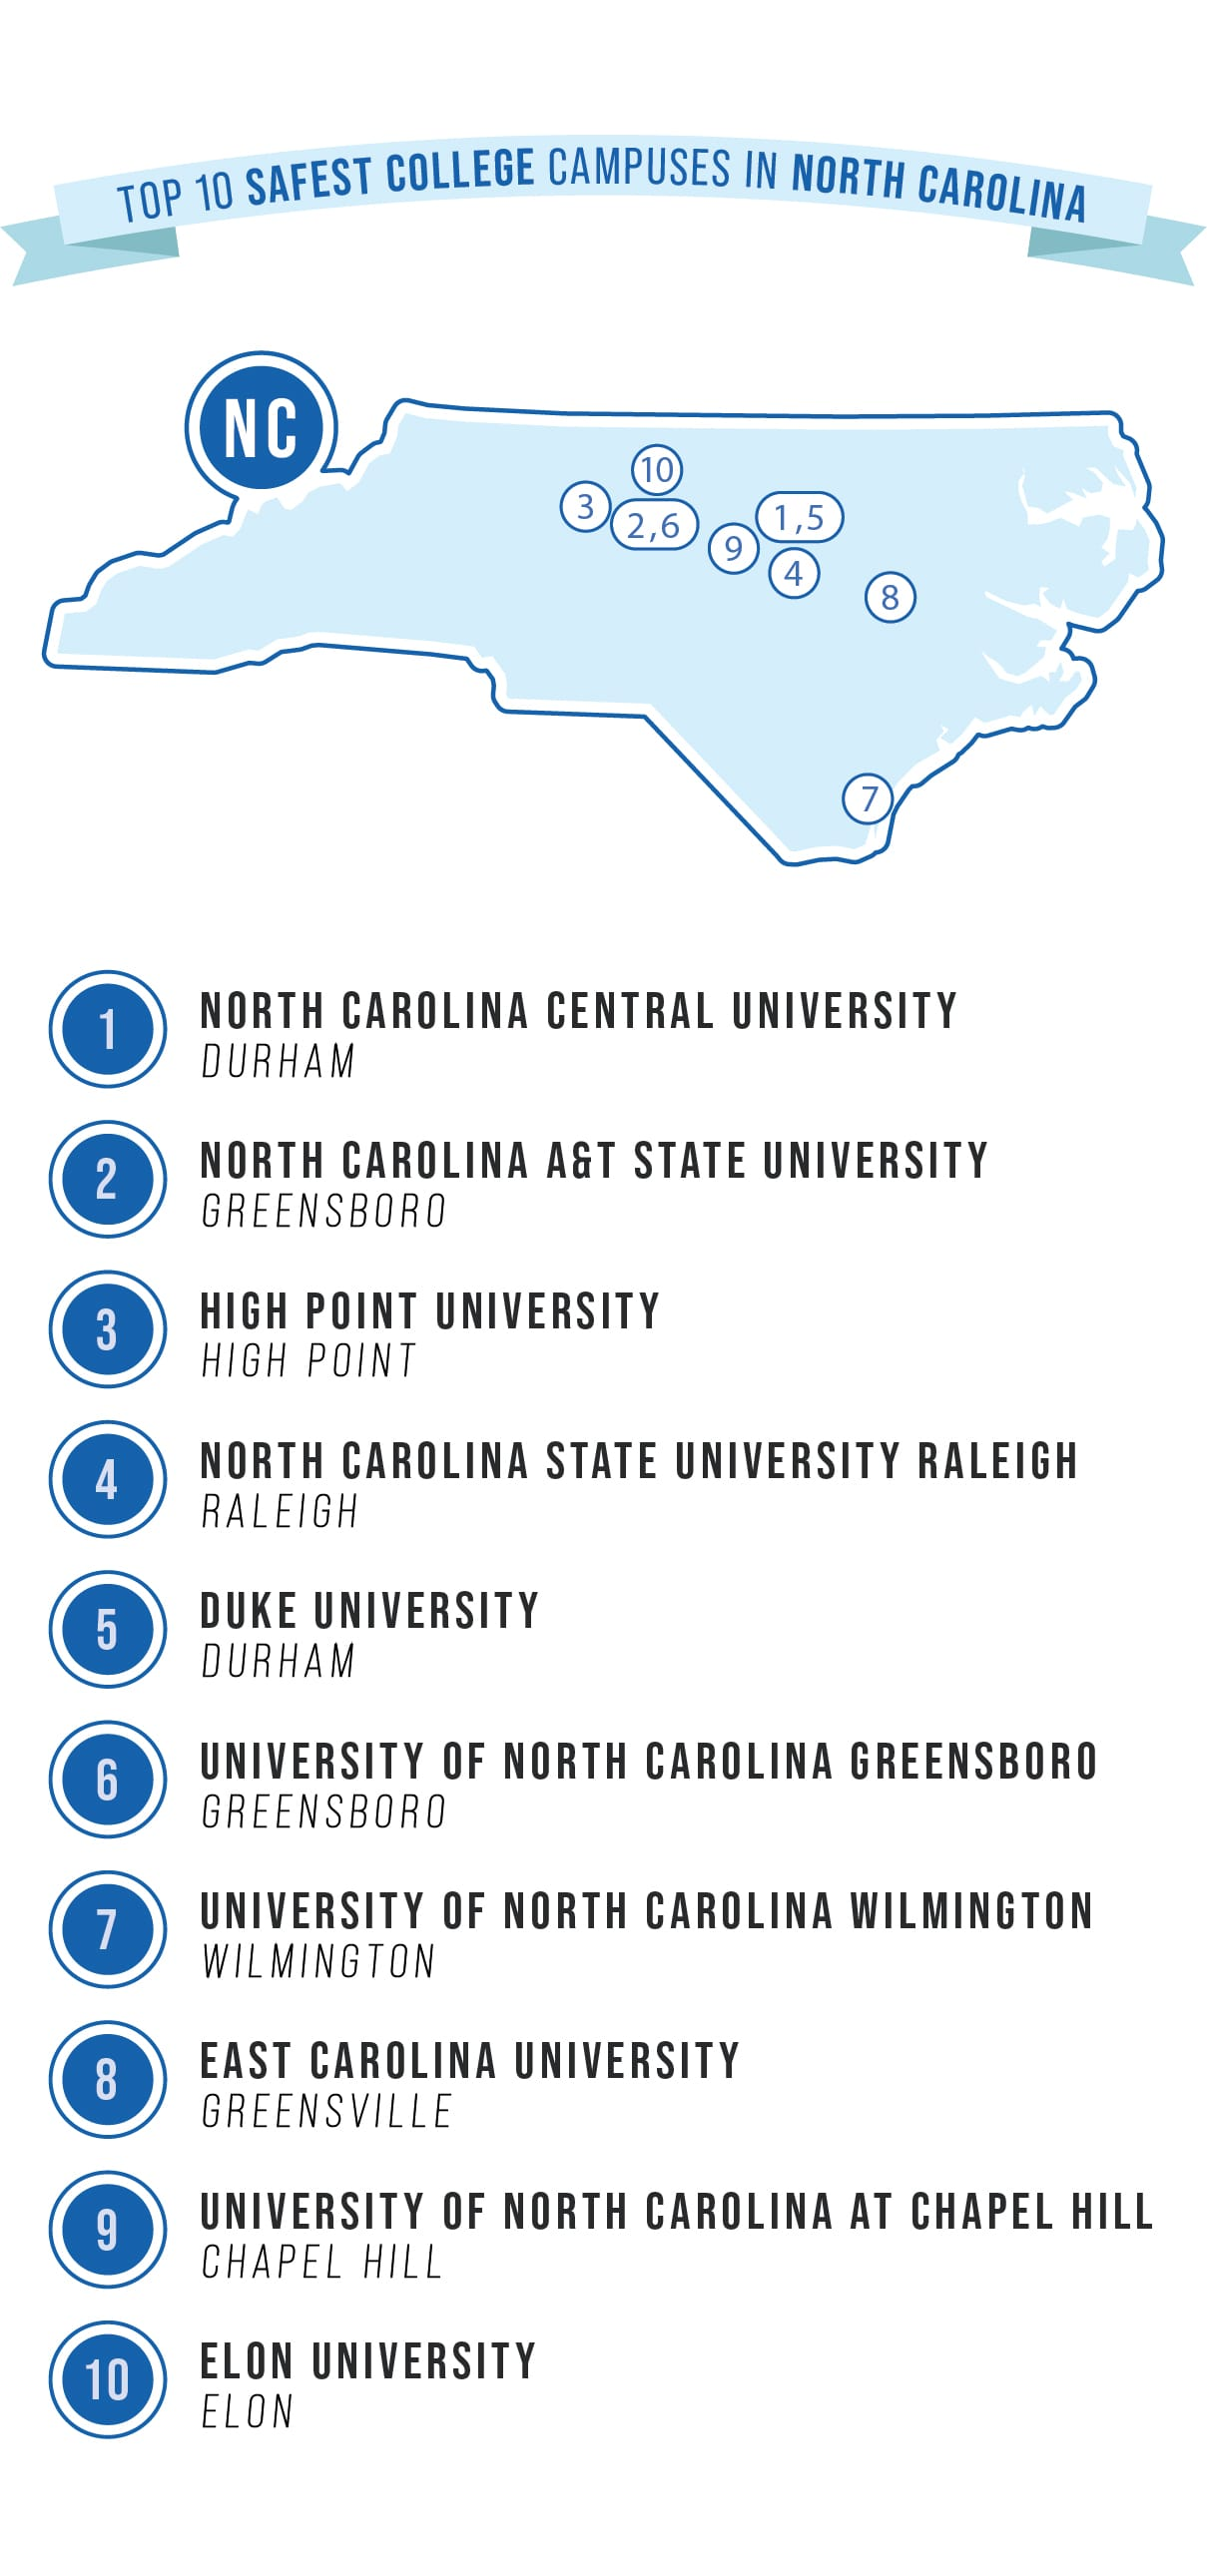 safest college campuses in NC